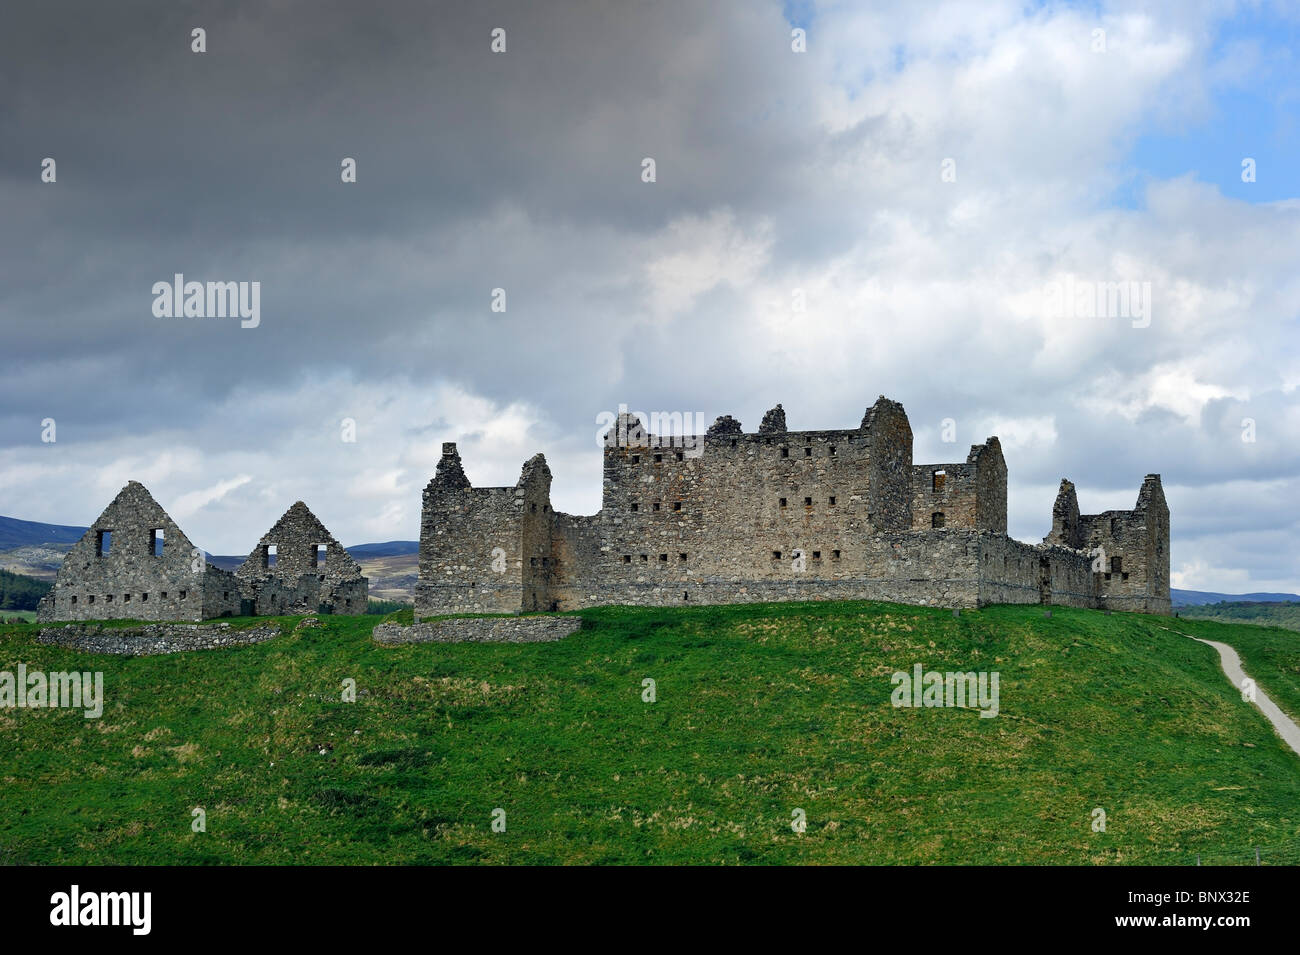 Ruins of Ruthven barracks, built in 1719 after the 1715 Jacobite rising, near Kingussie in the Highlands, Speyside, - Stock Image